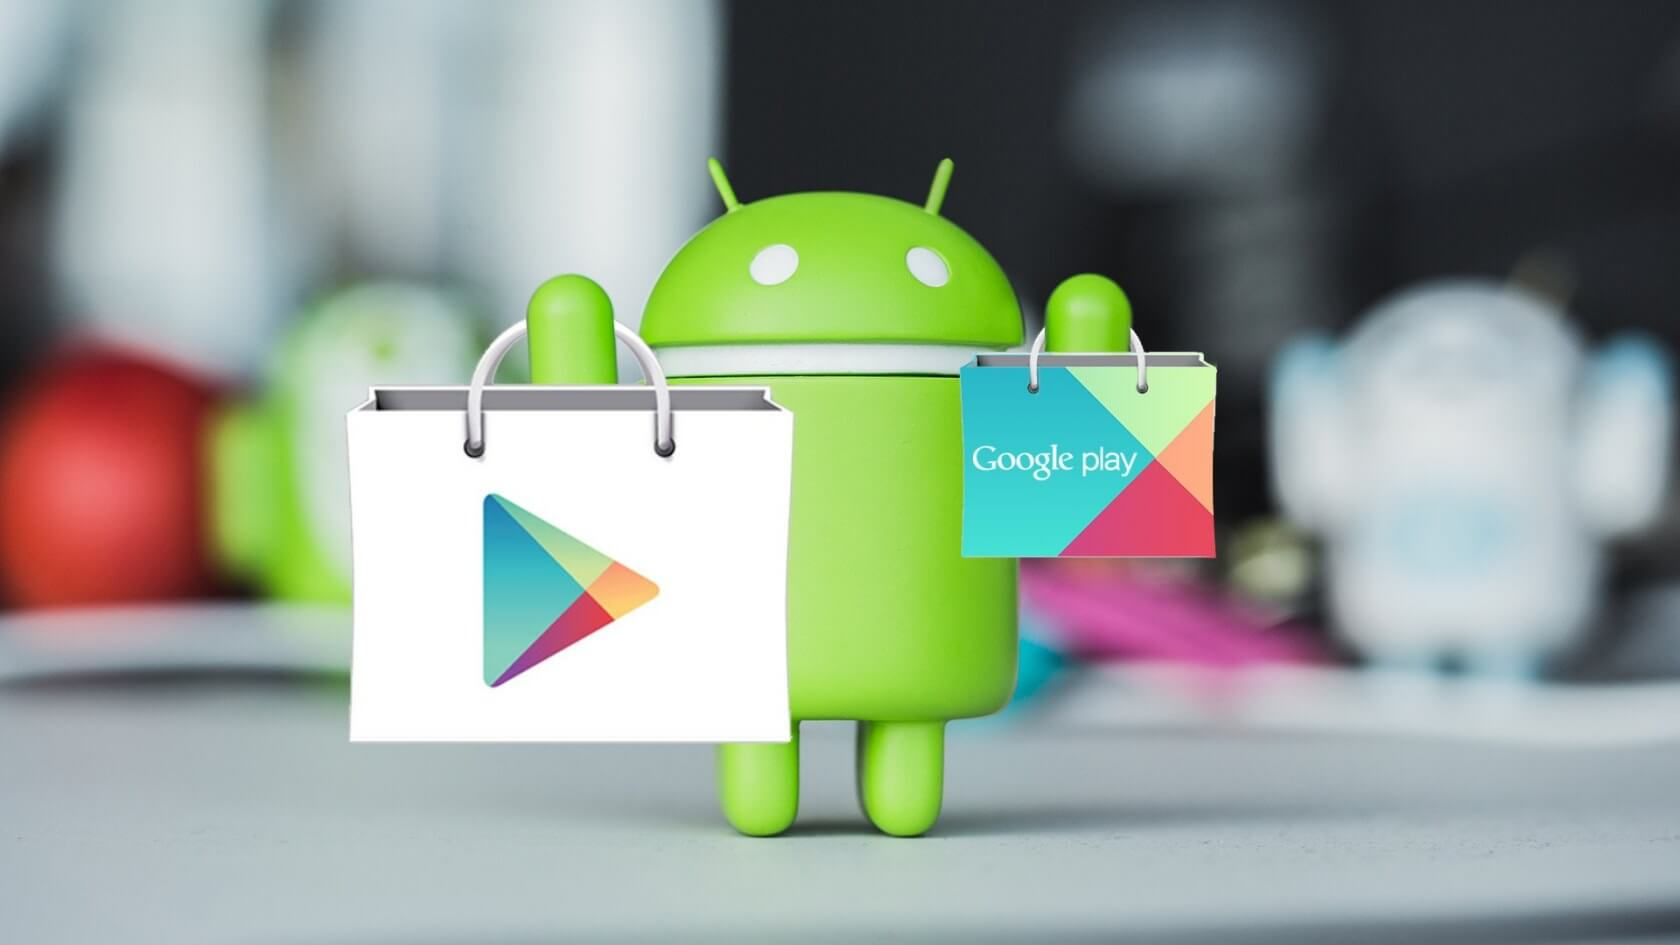 Google removes 29 malicious photo apps from Android's Play Store